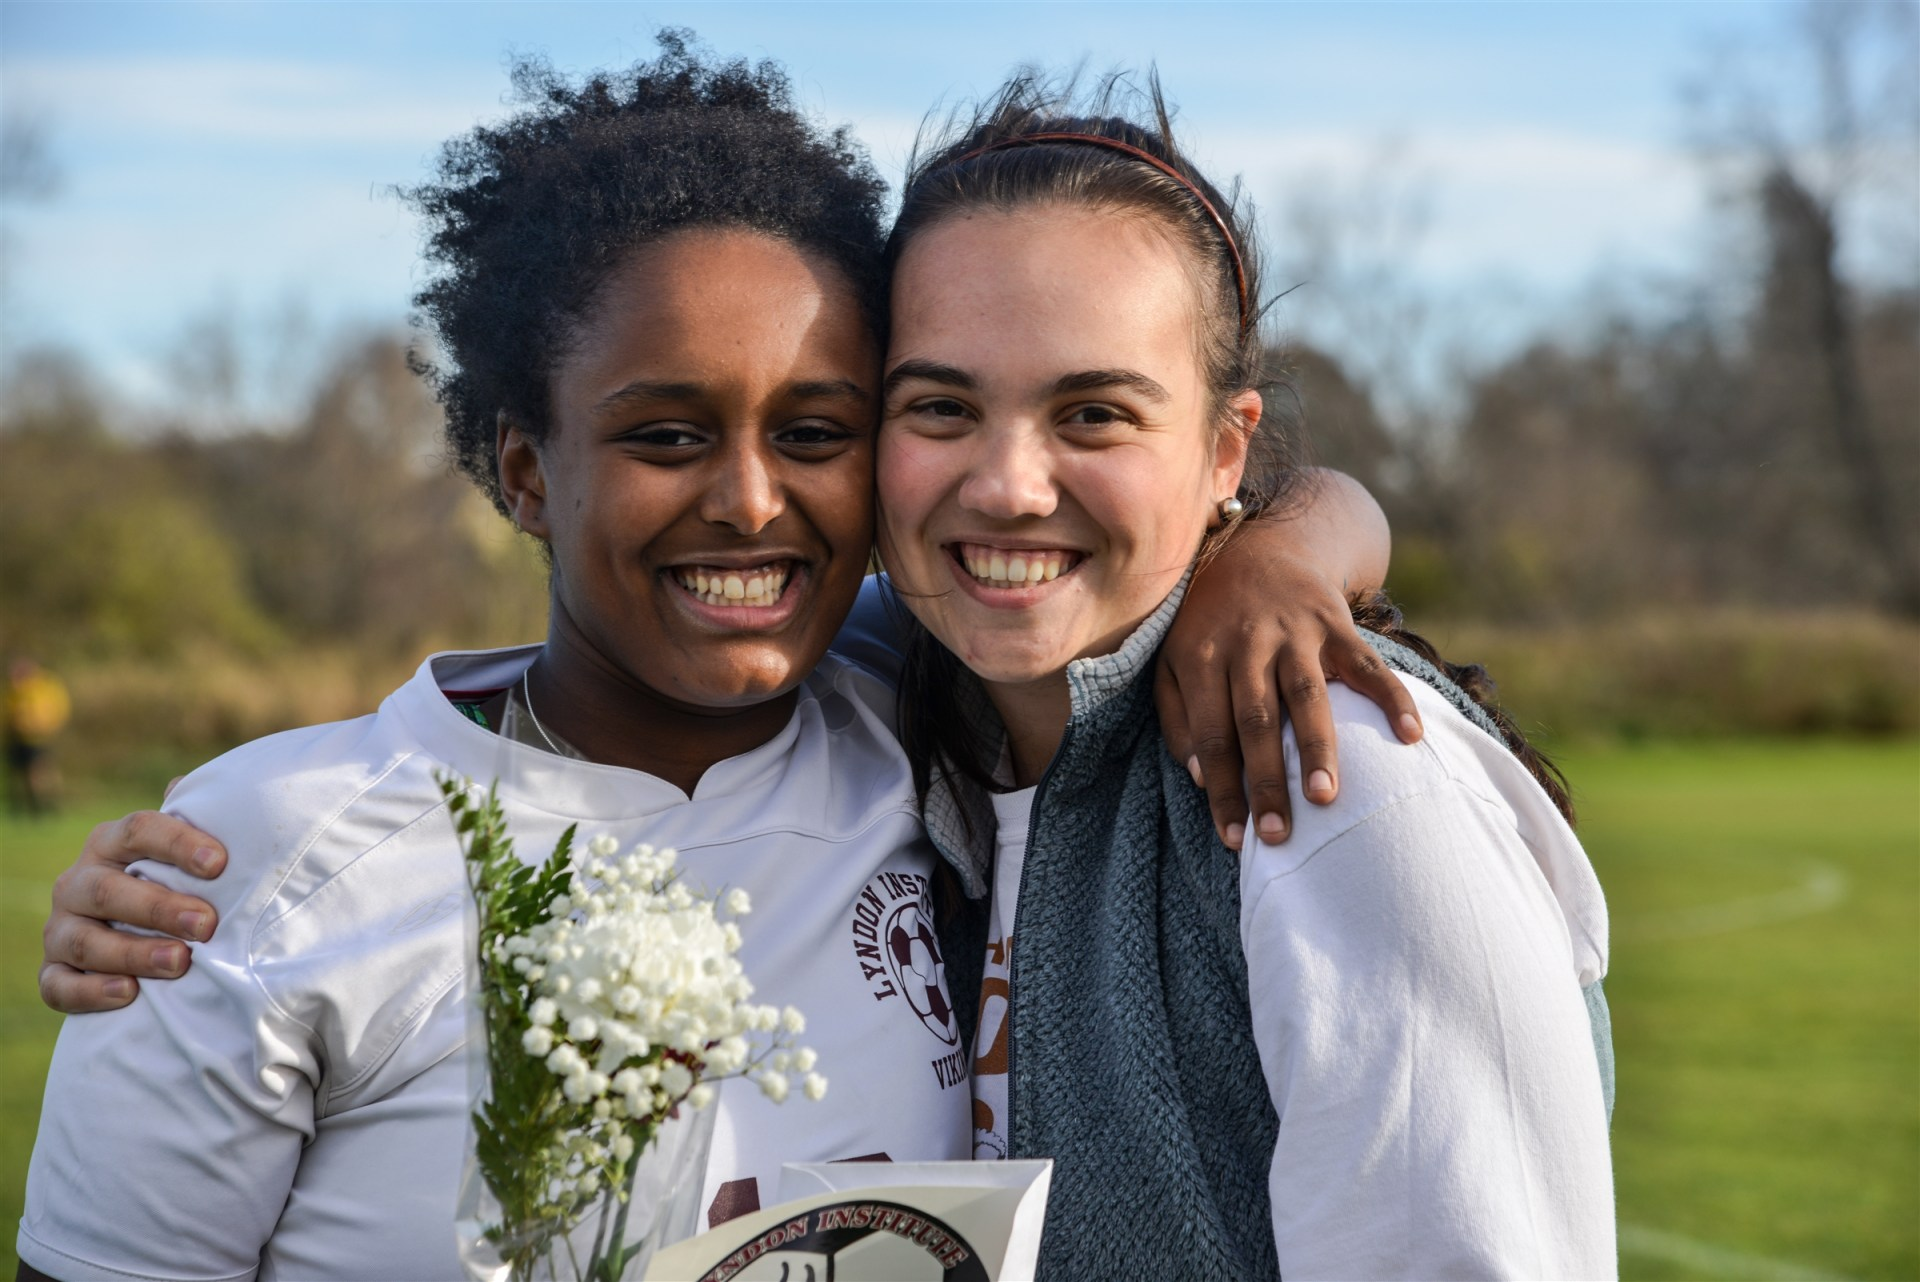 A portrait of two female students at a Senior Day celebration.